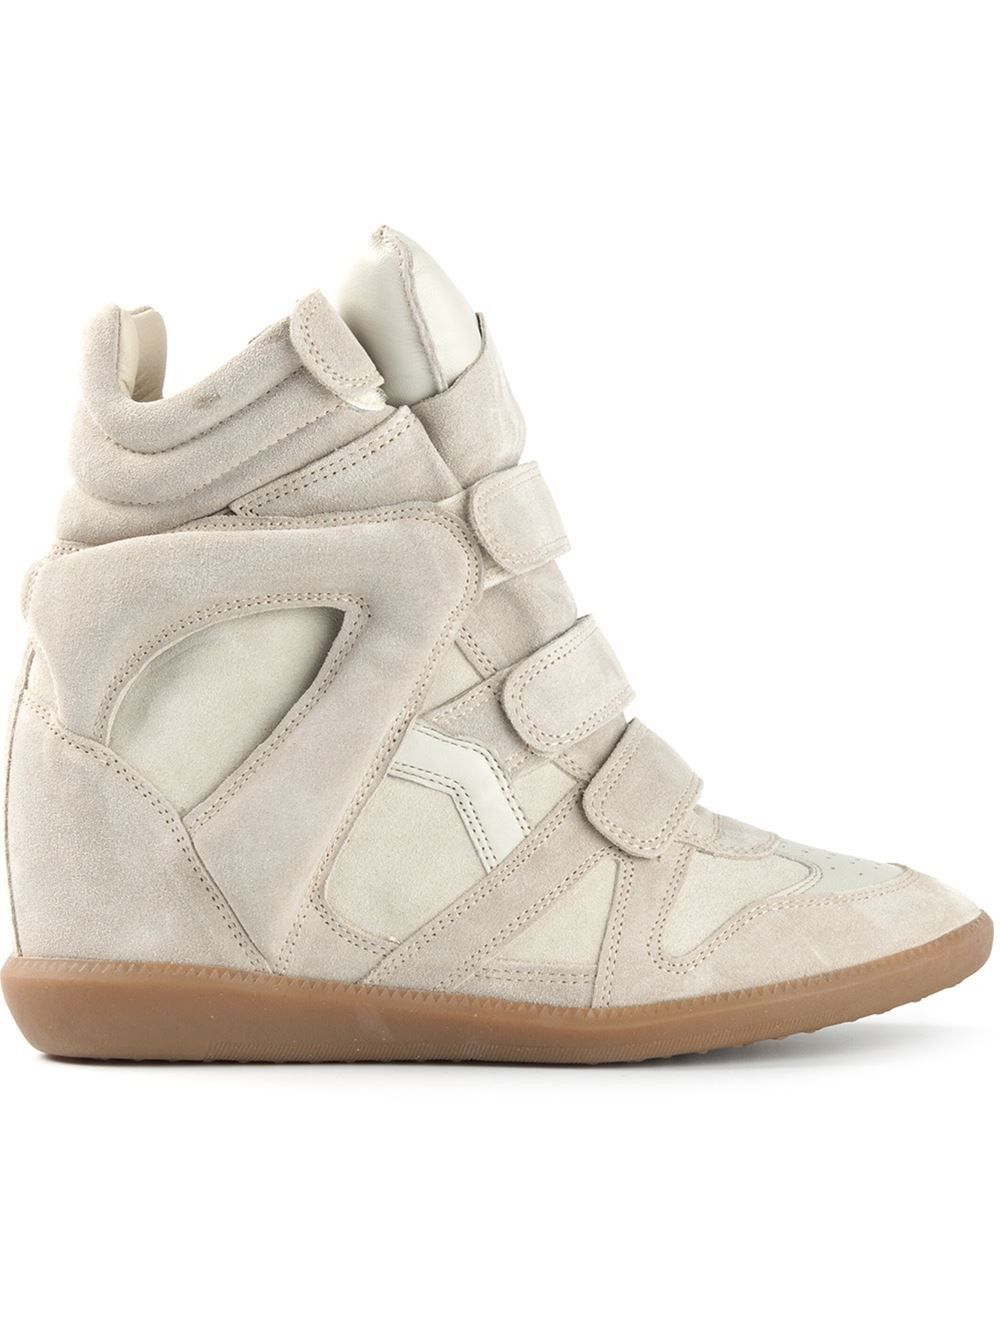 f2433ab3e6f6 ... Leather Suede Bekett Sneaker Wedge Shoes SZ 37 7. Return to Previous  Page. Out. of stock. isabel-marant-white-1